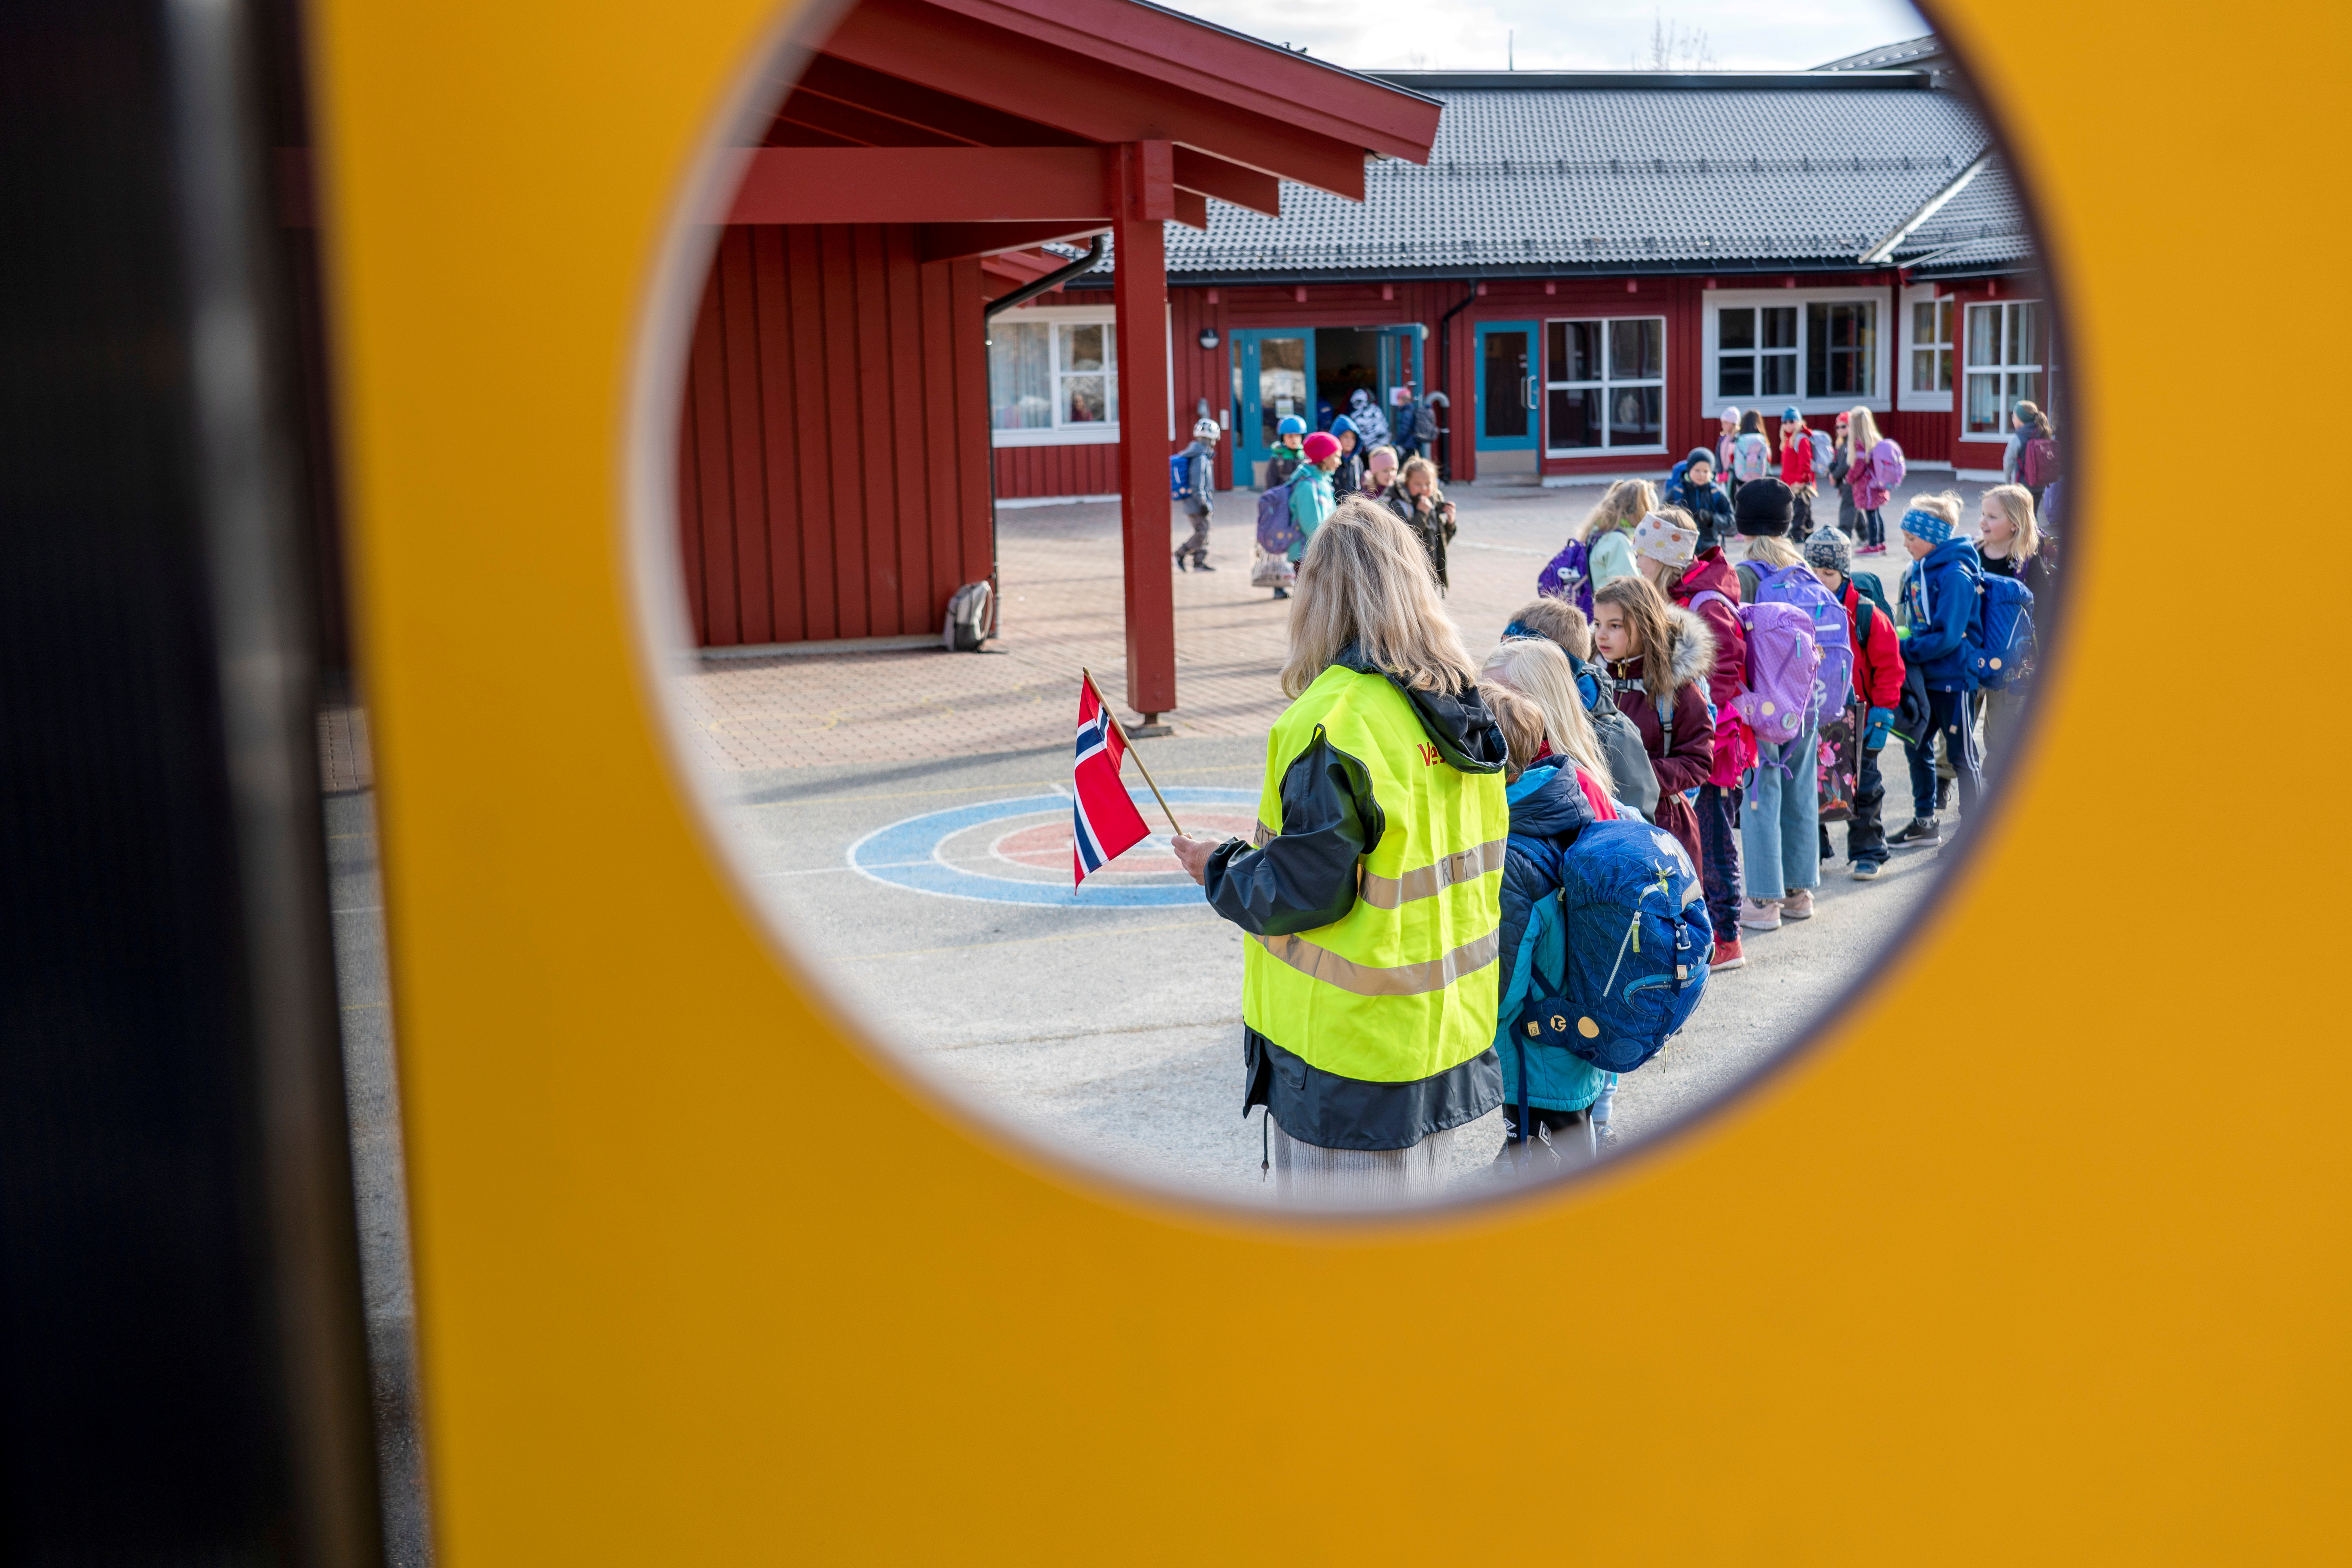 Children stay in line at Vikasen school, as it reopens after few weeks, due to the coronavirus disease (COVID-19) outbreak, in Trondheim, Norway April 27, 2020. NTB Scanpix/Gorm Kallestad via REUTERS ATTENTION EDITORS - THIS IMAGE WAS PROVIDED BY A THIRD PARTY. NORWAY OUT. NO COMMERCIAL OR EDITORIAL SALES IN NORWAY. - RC2XCG90F6GI